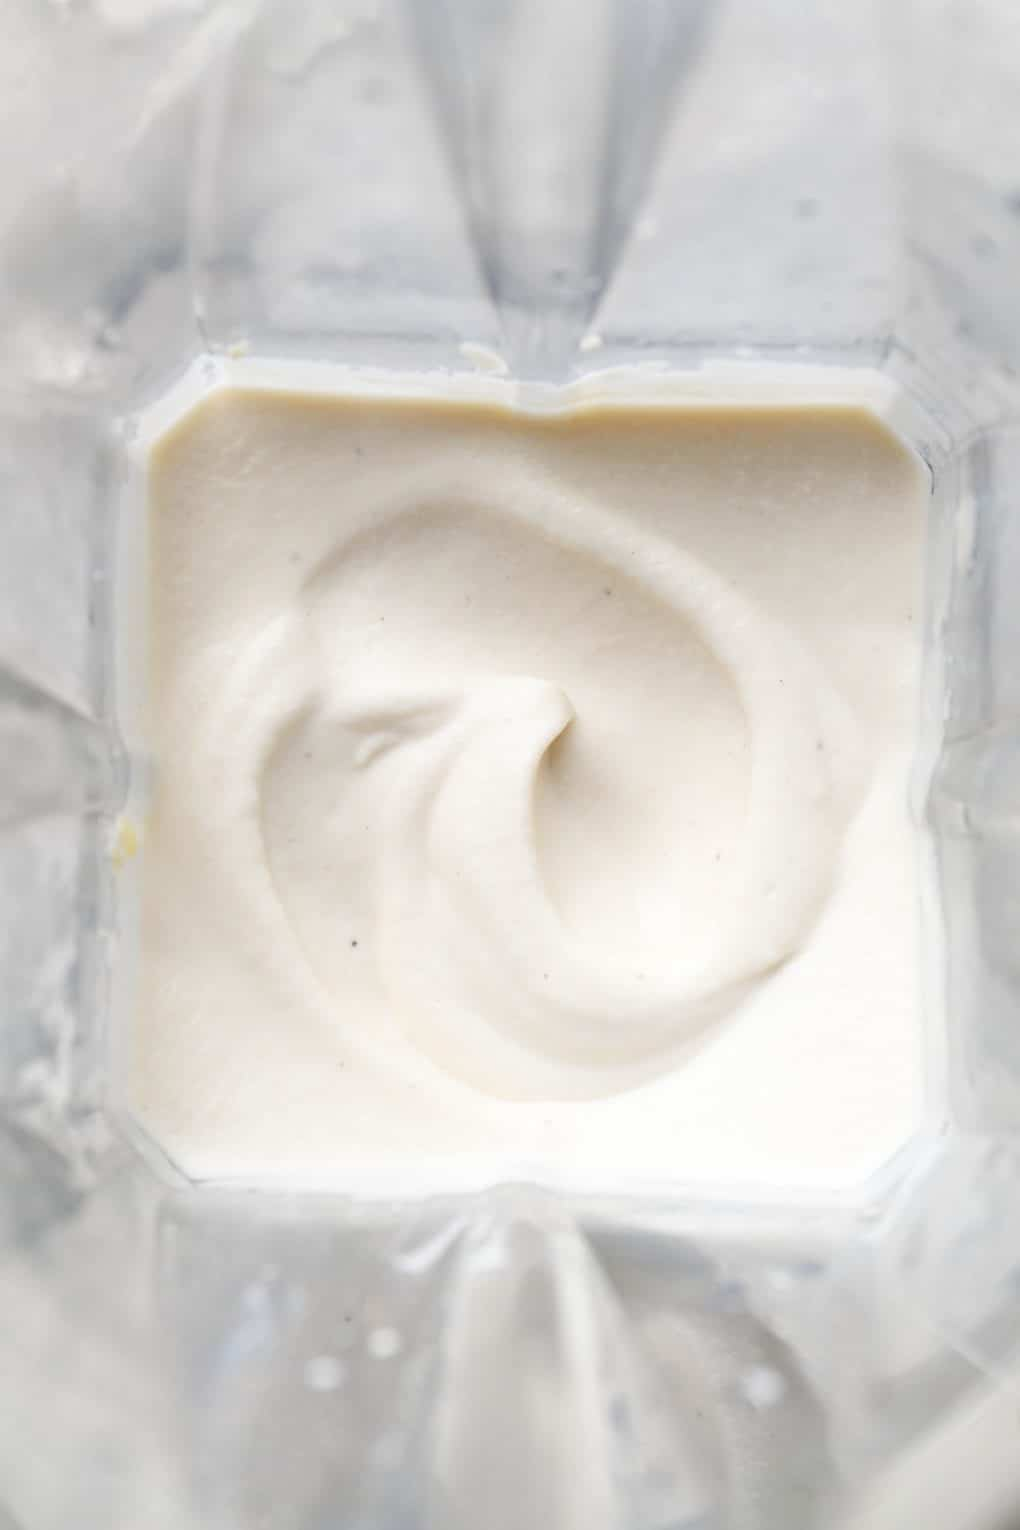 Image of swoopy smooth blended vegan sour cream inside a blender container.